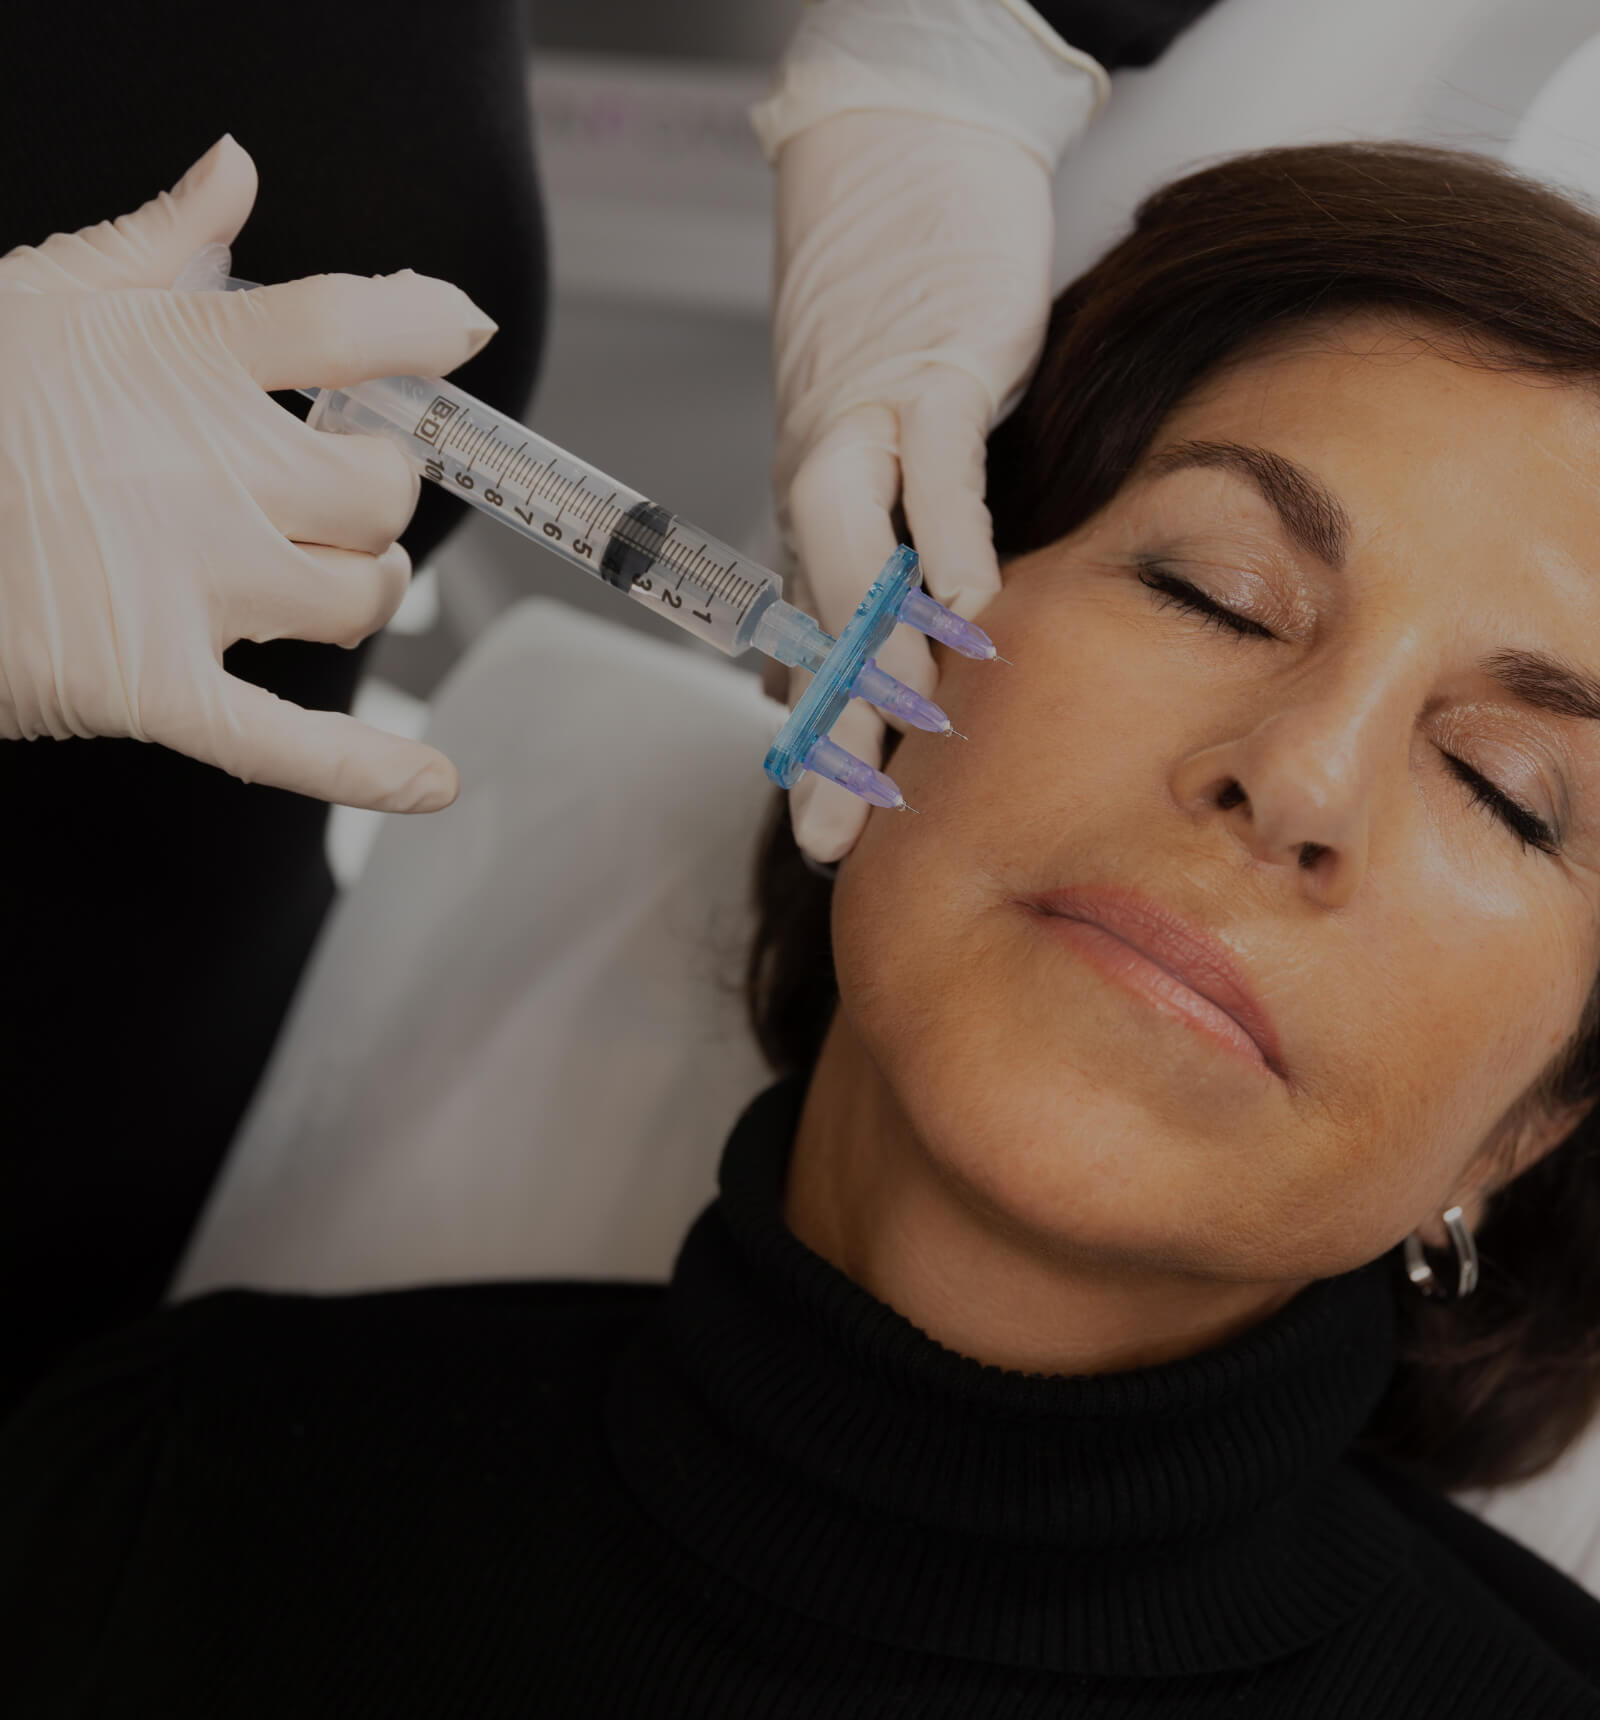 A nurse at Clinique Chloé performing local anesthesia on her patient's face using a multiport injector